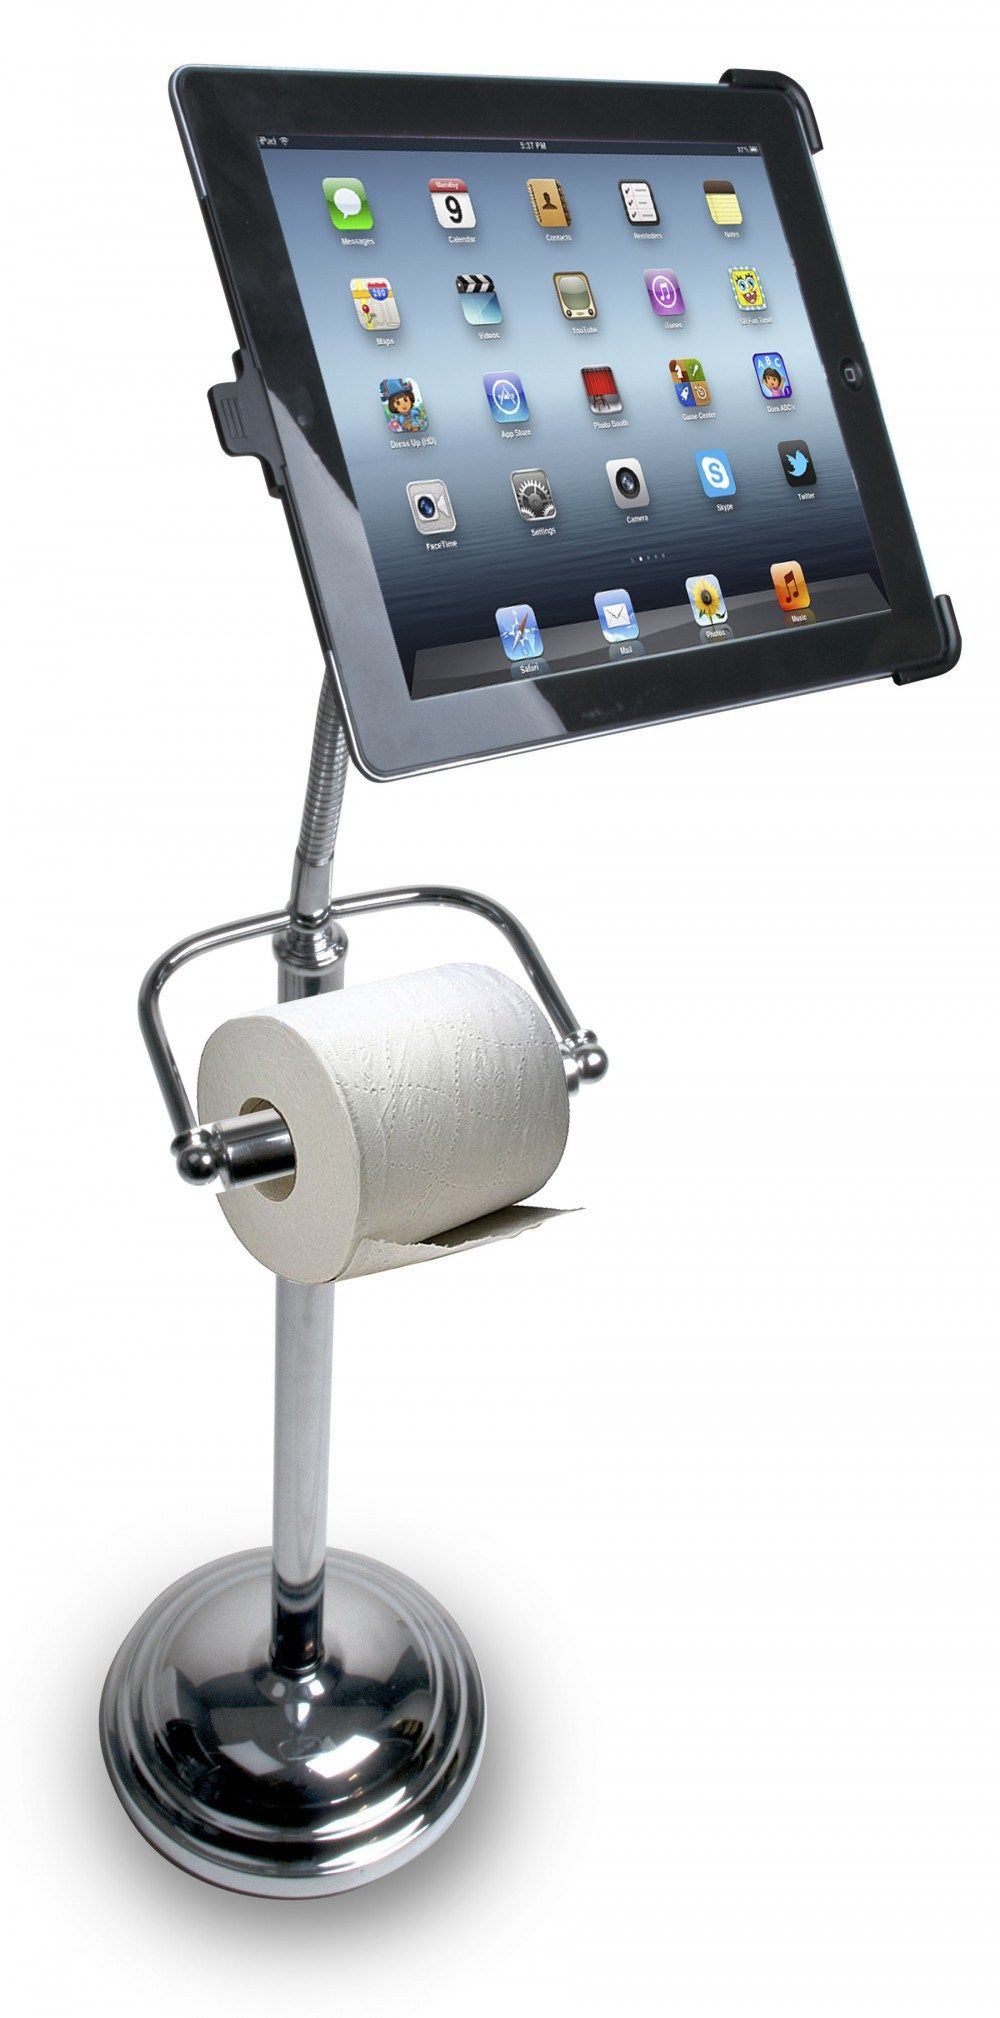 Most Popular HighTech Gadgets Commonly Used in Technology